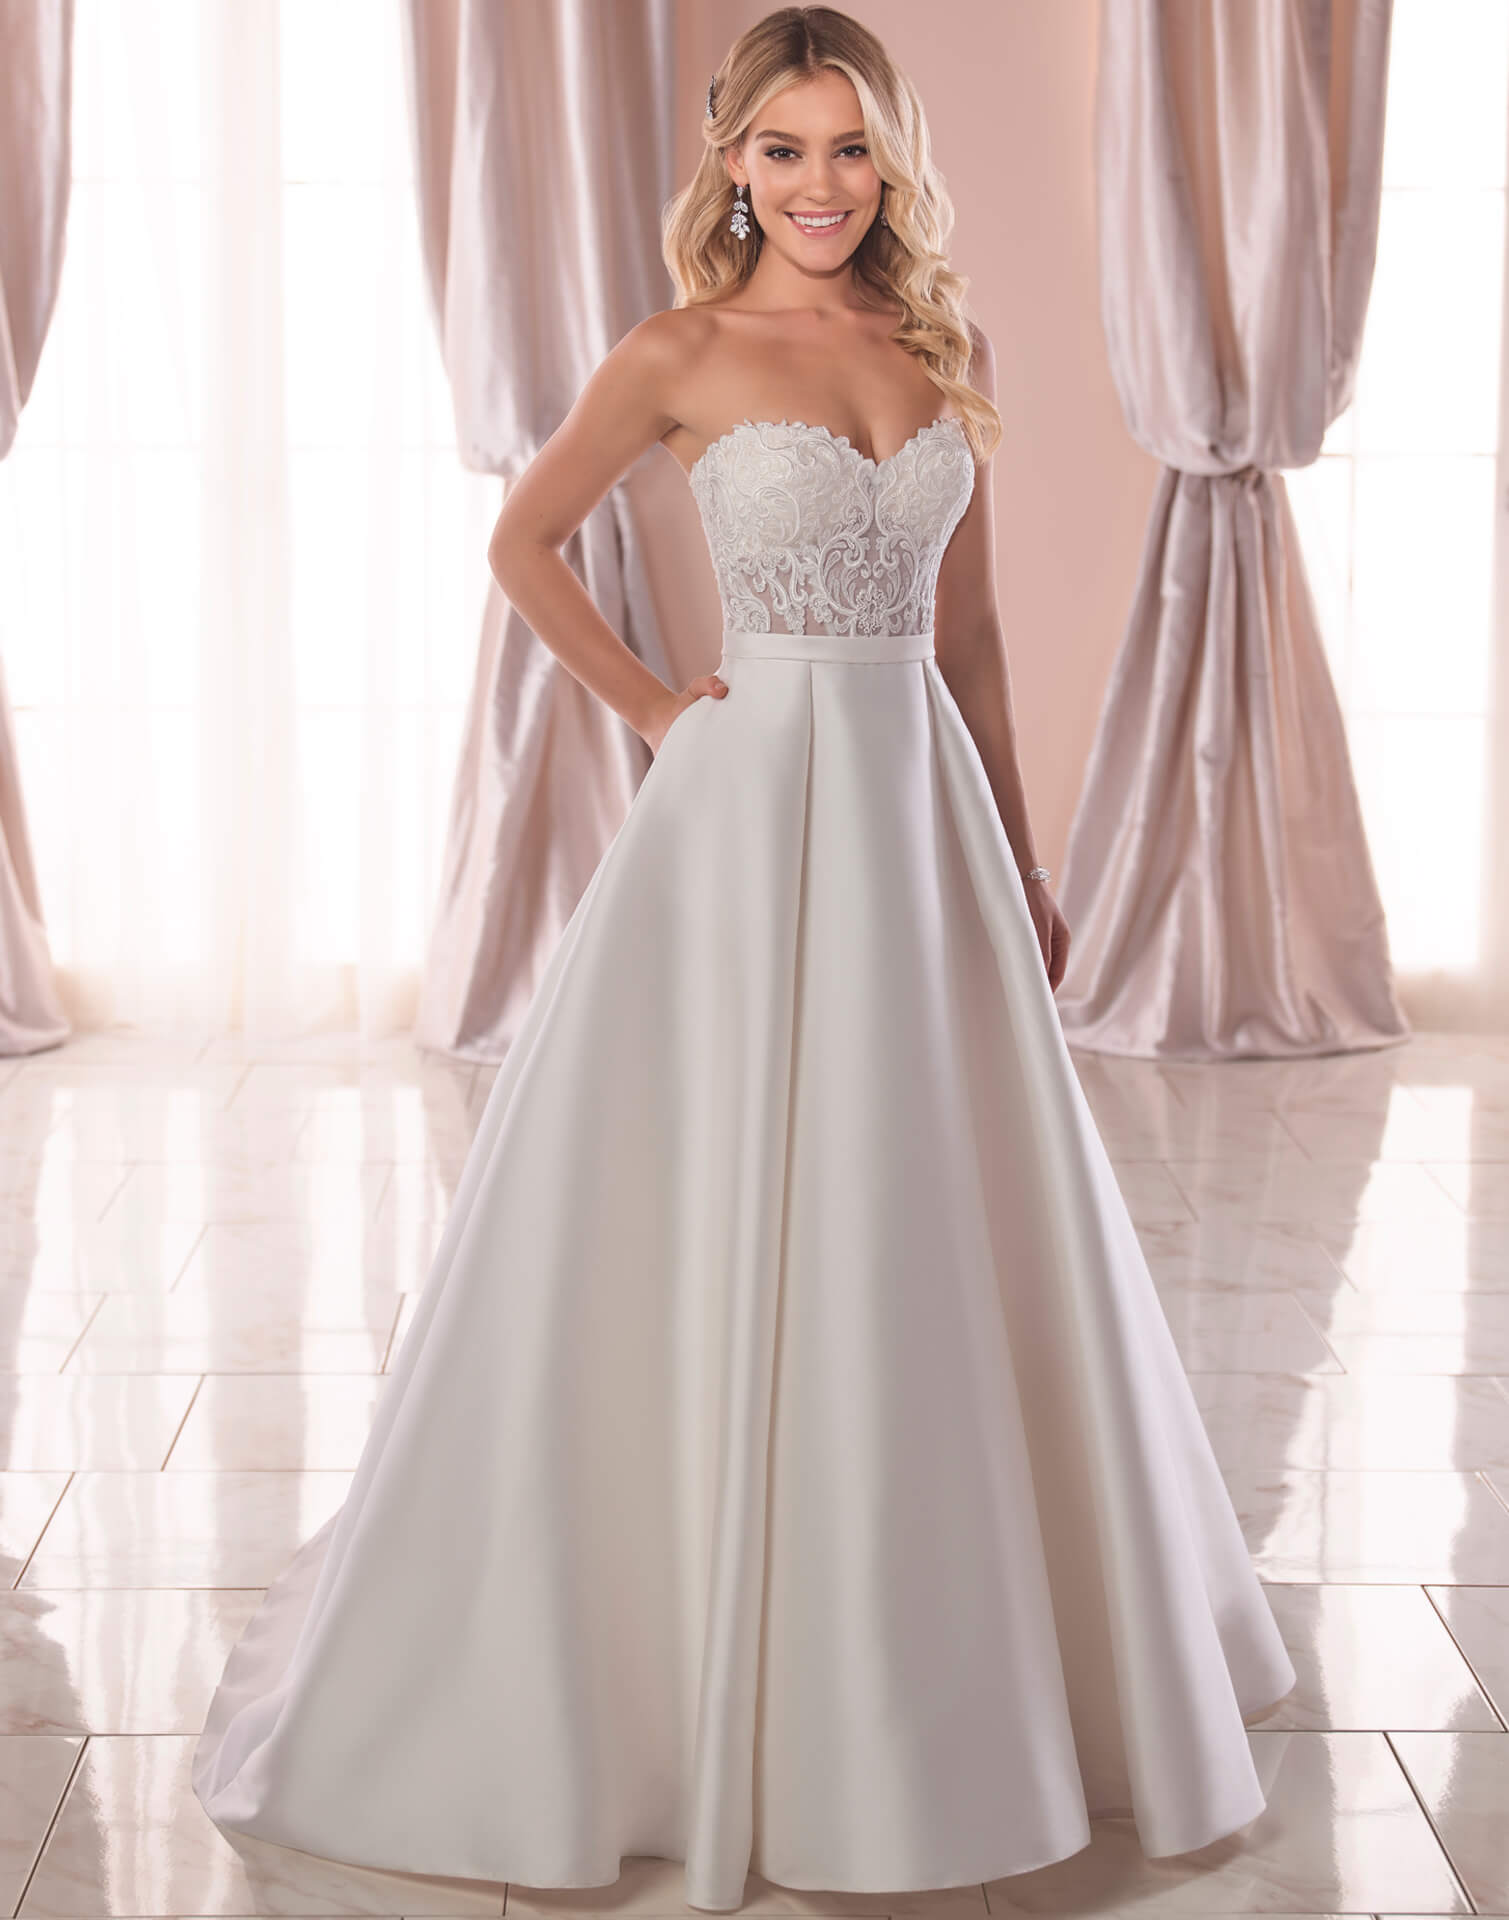 6763 – Stella York Wedding Dress Collection – Front View